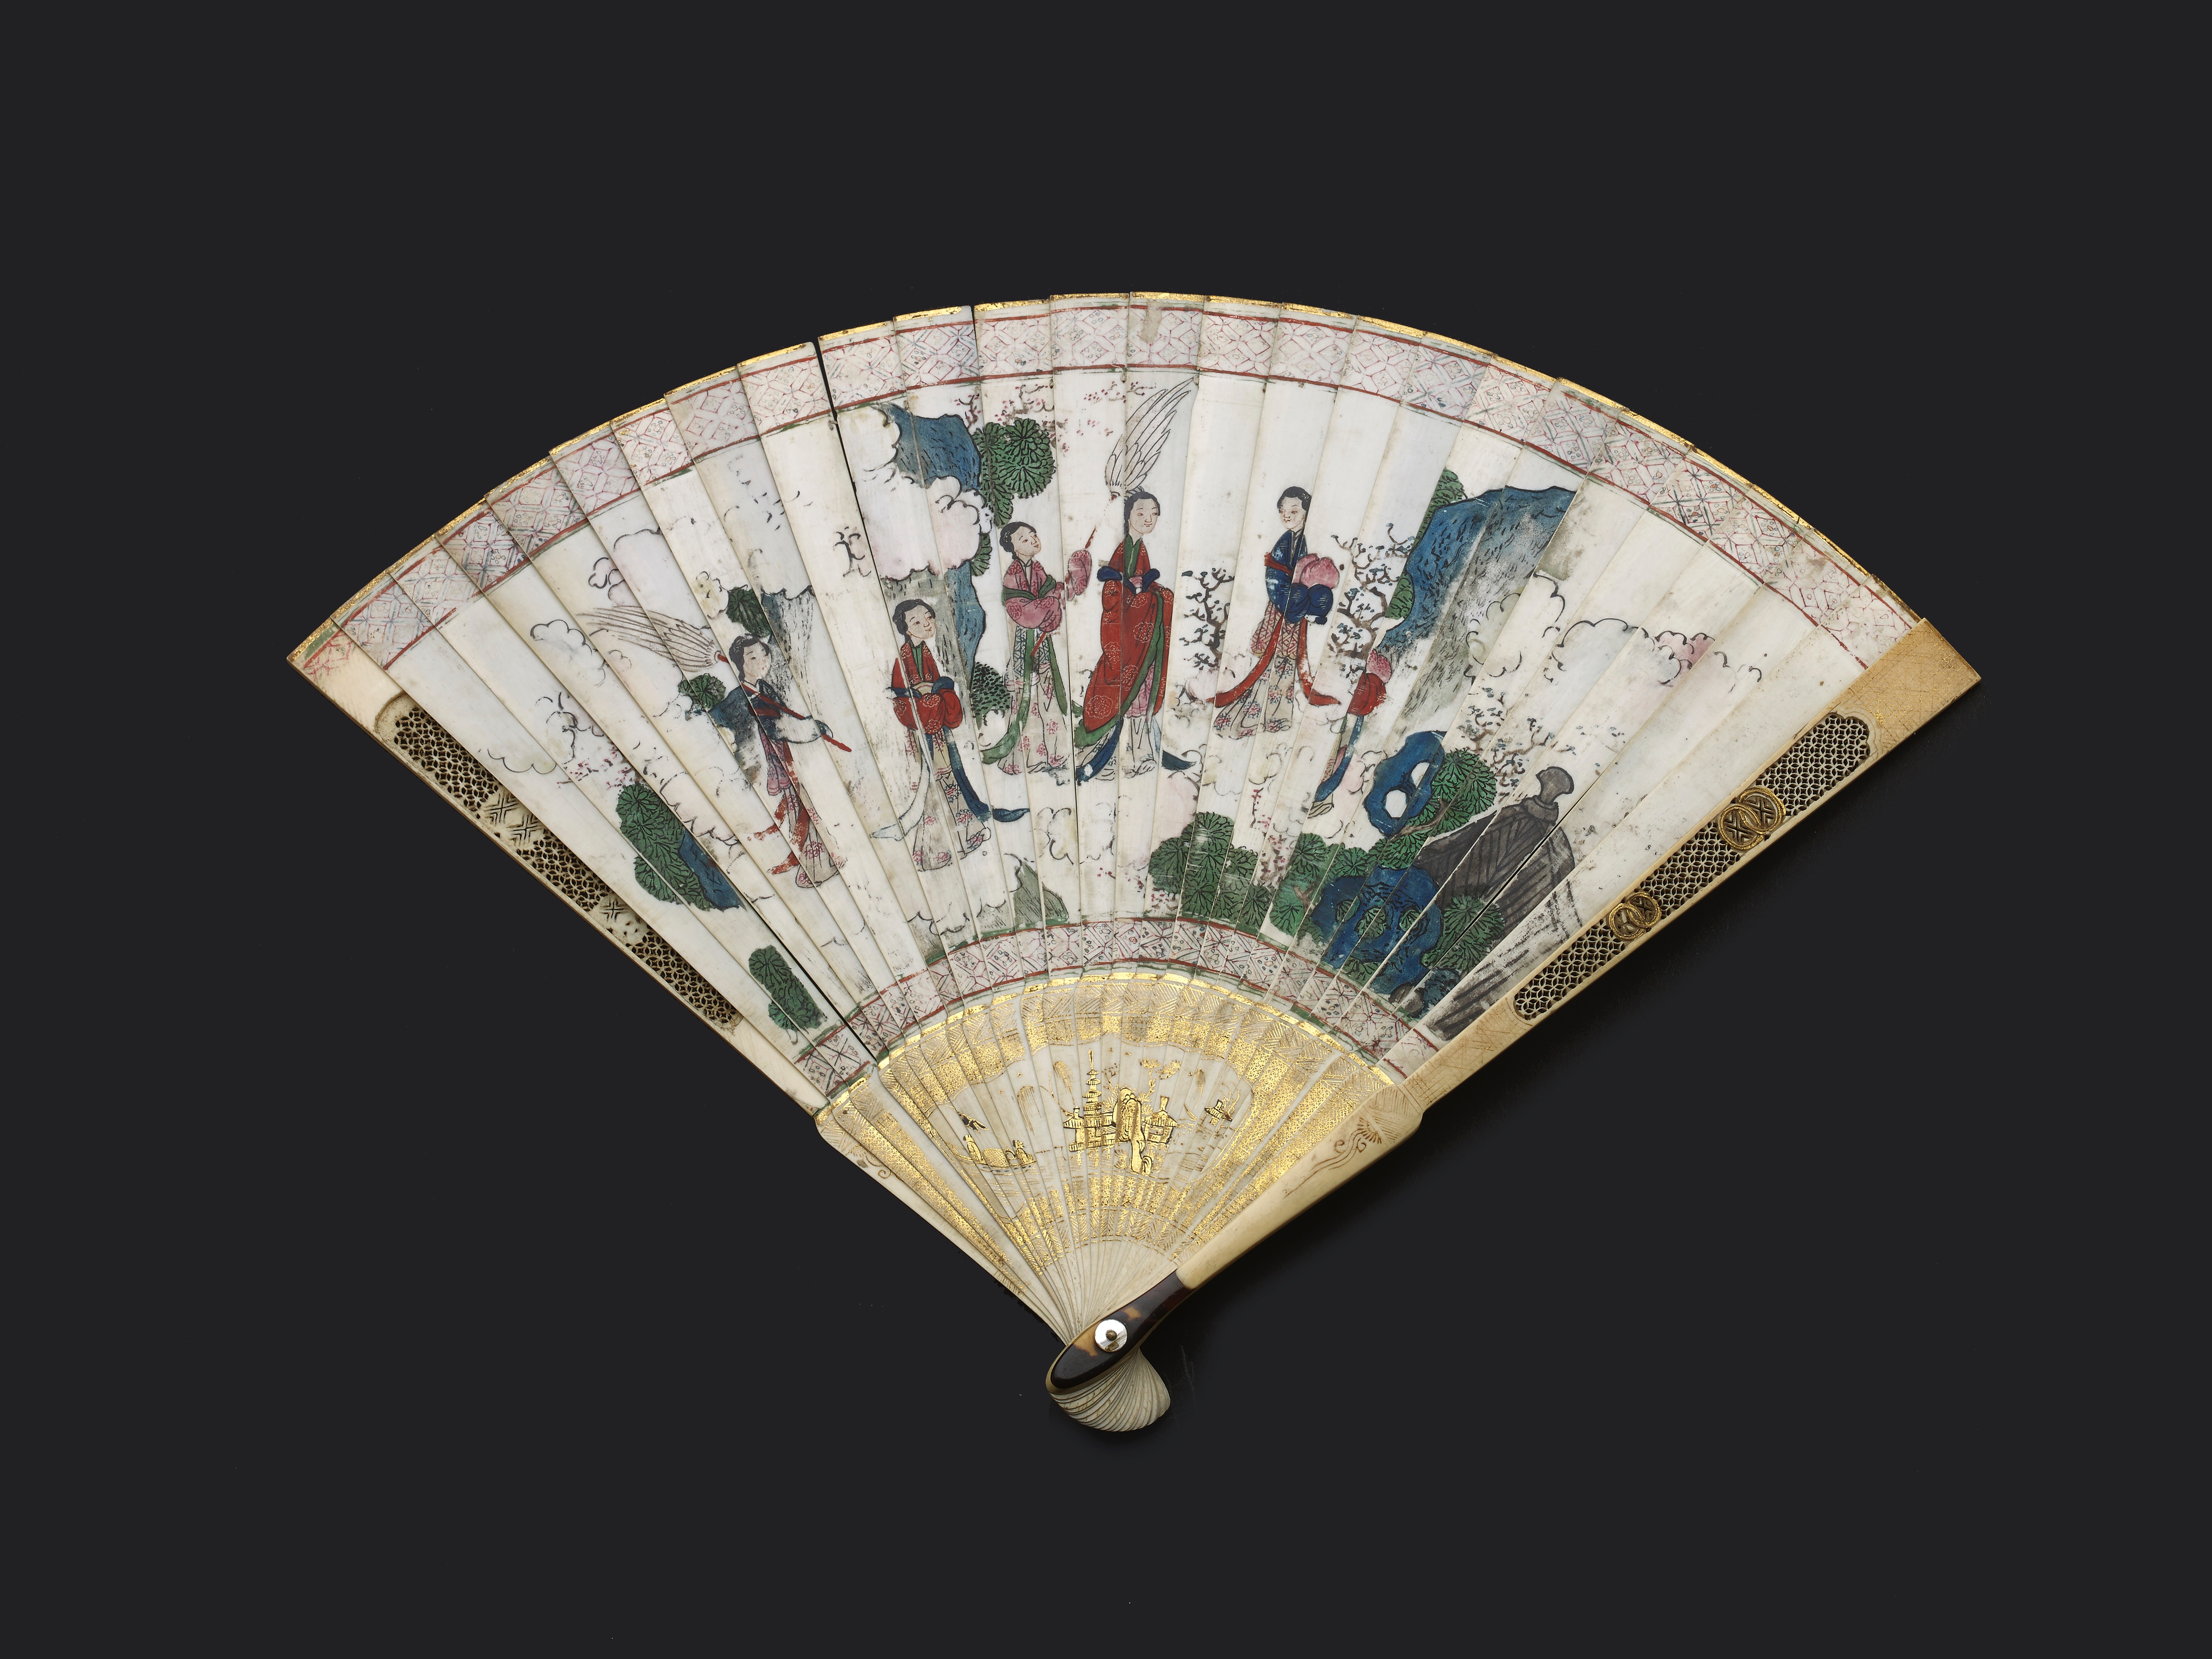 Lot 8 - A CHINESE EXPORT CARVED AND PAINTED IVORY FAN, QING DYNASTY, KANGXI PERIOD, CIRCA 1710-22